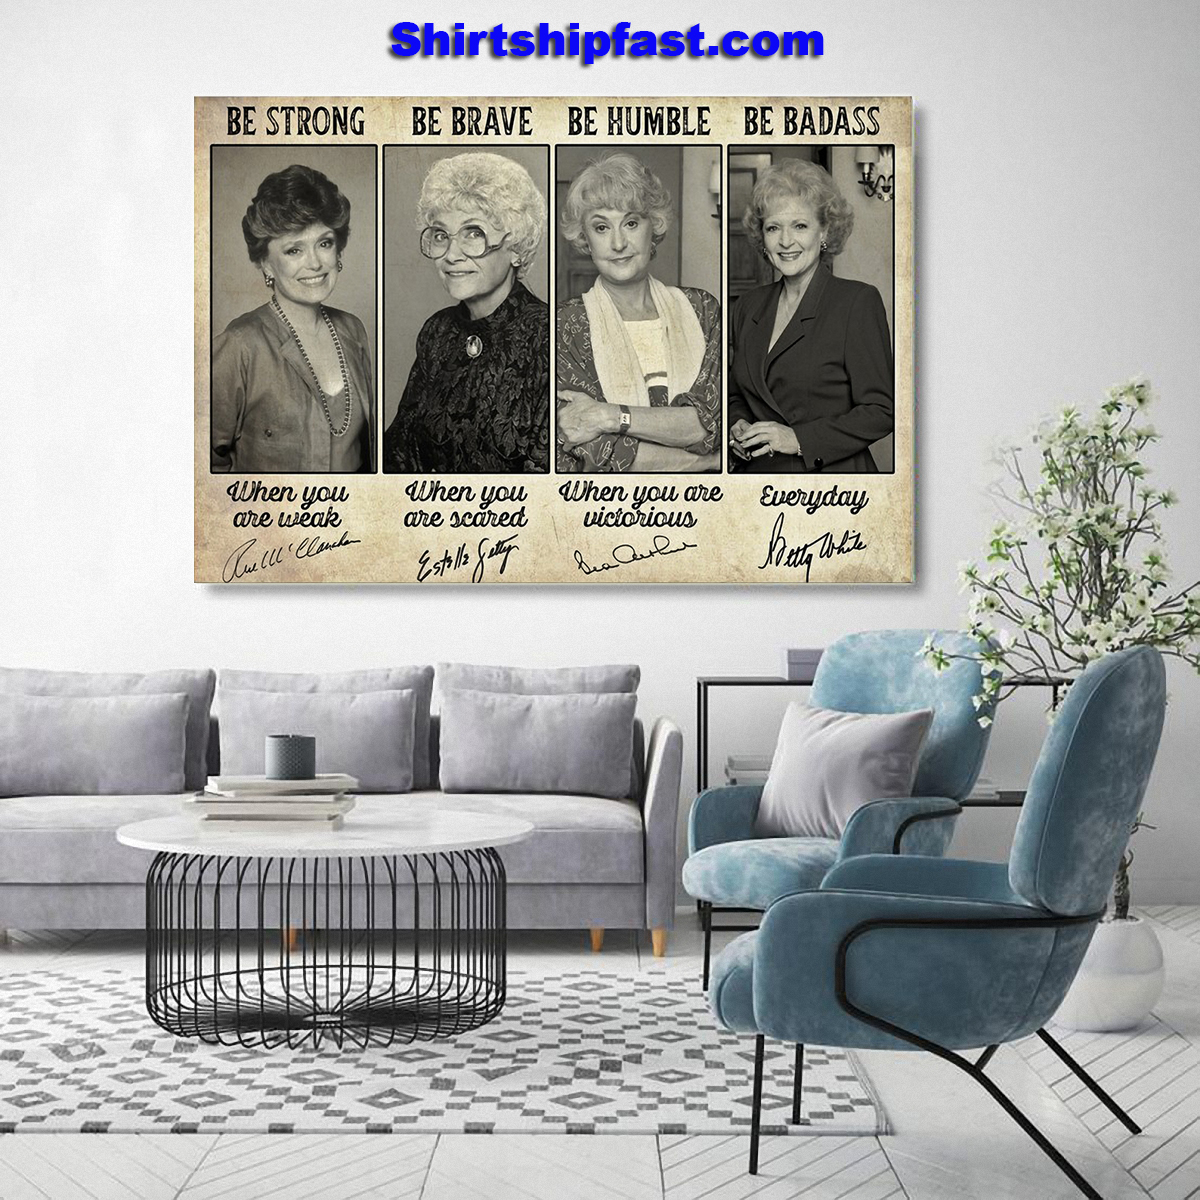 Poster Golden girls be strong be brave be humble be badass signature - Picture 1